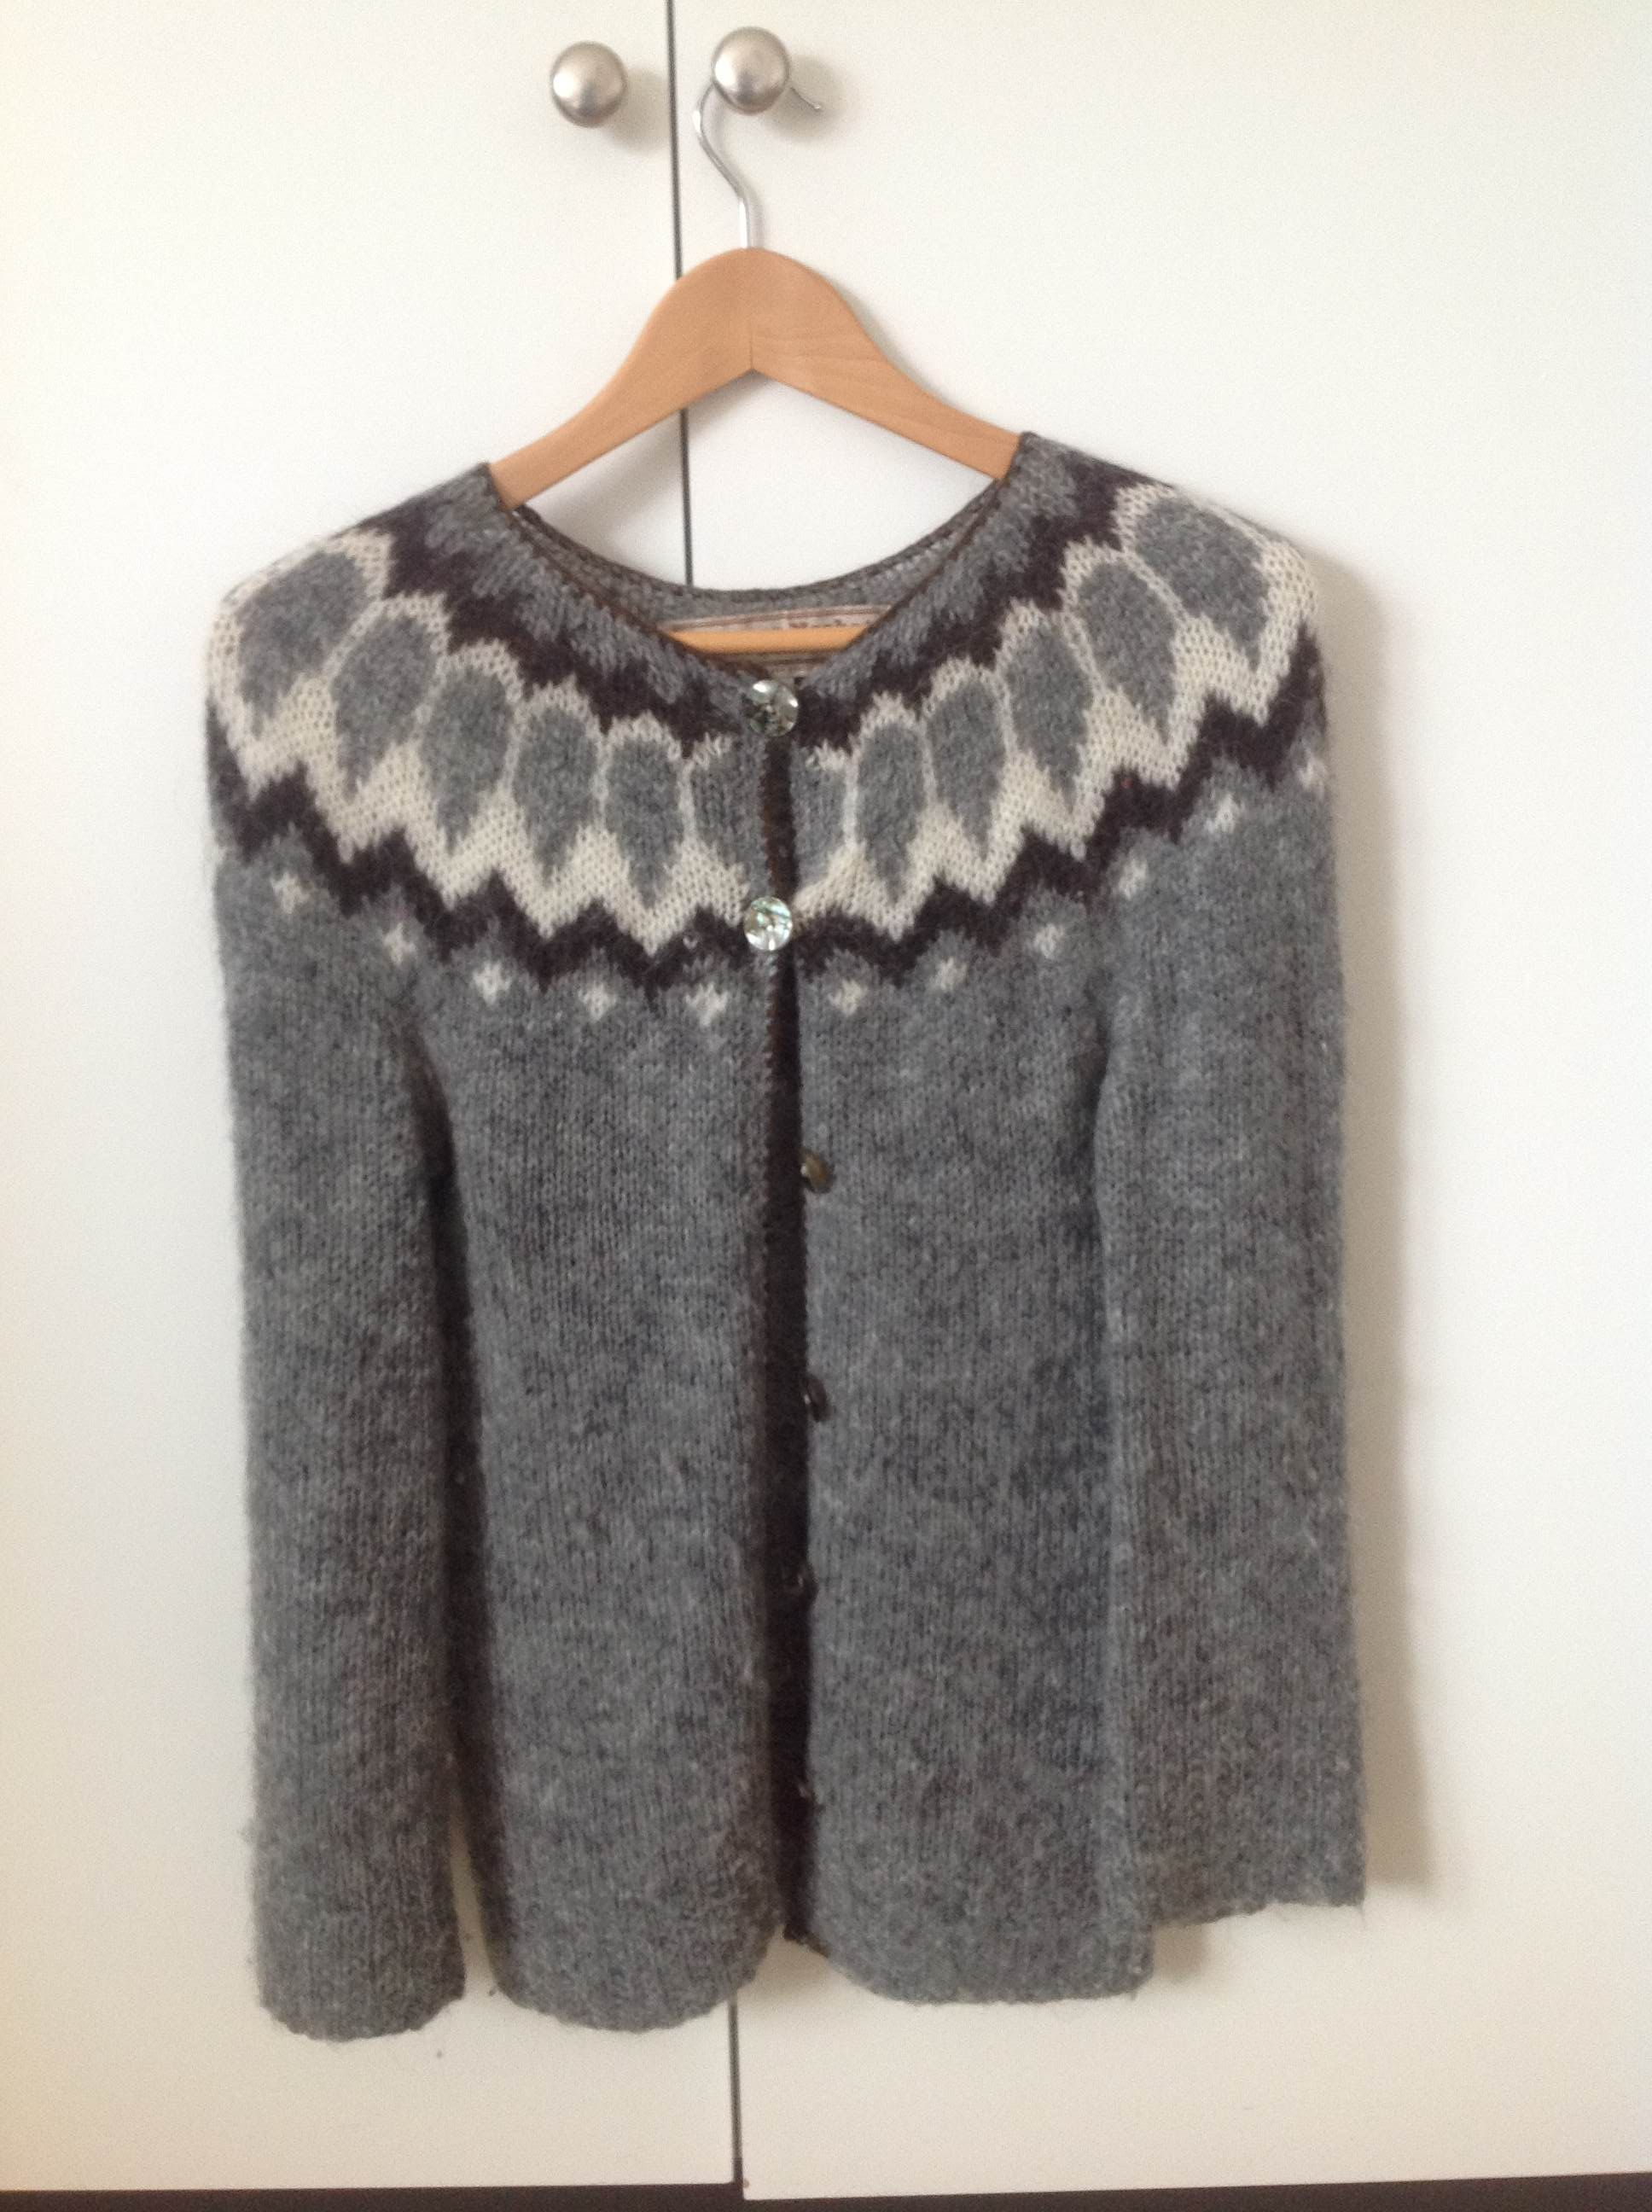 My Icelandic hanknitted cardigan by Farmer´s Market. Made of wool from Icelandic landrace sheep. Highly appreciated...and used garment. Lightweighted but warm and cozy.